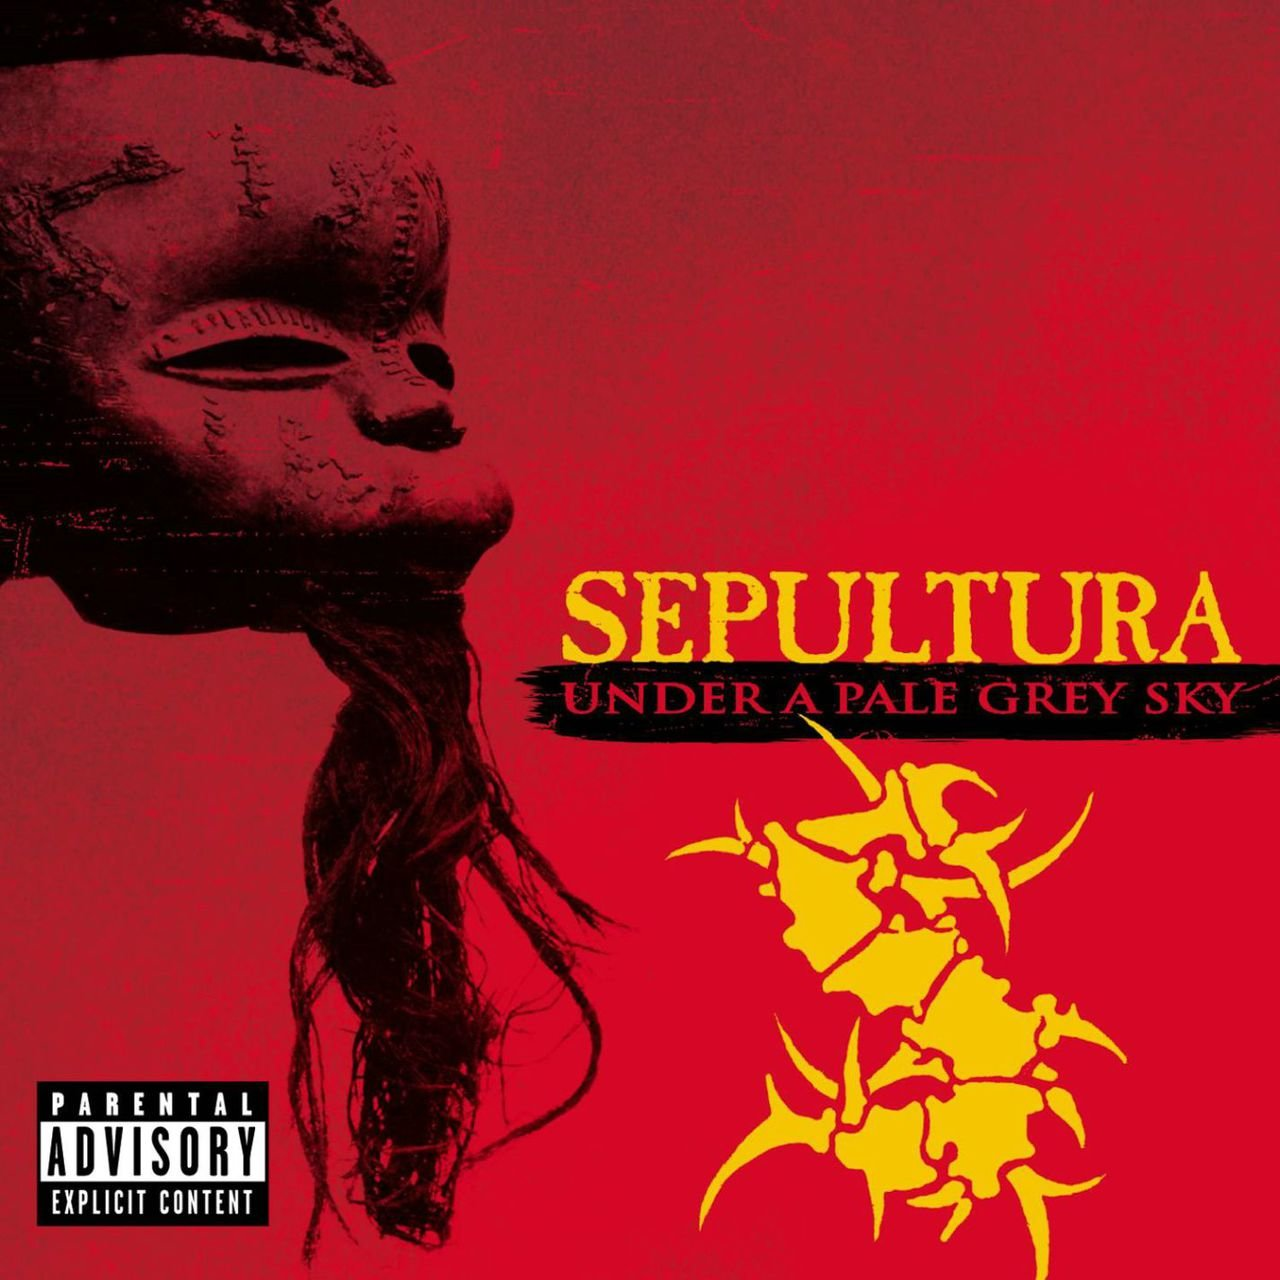 Under a pale grey sky sepultura tidal thecheapjerseys Choice Image